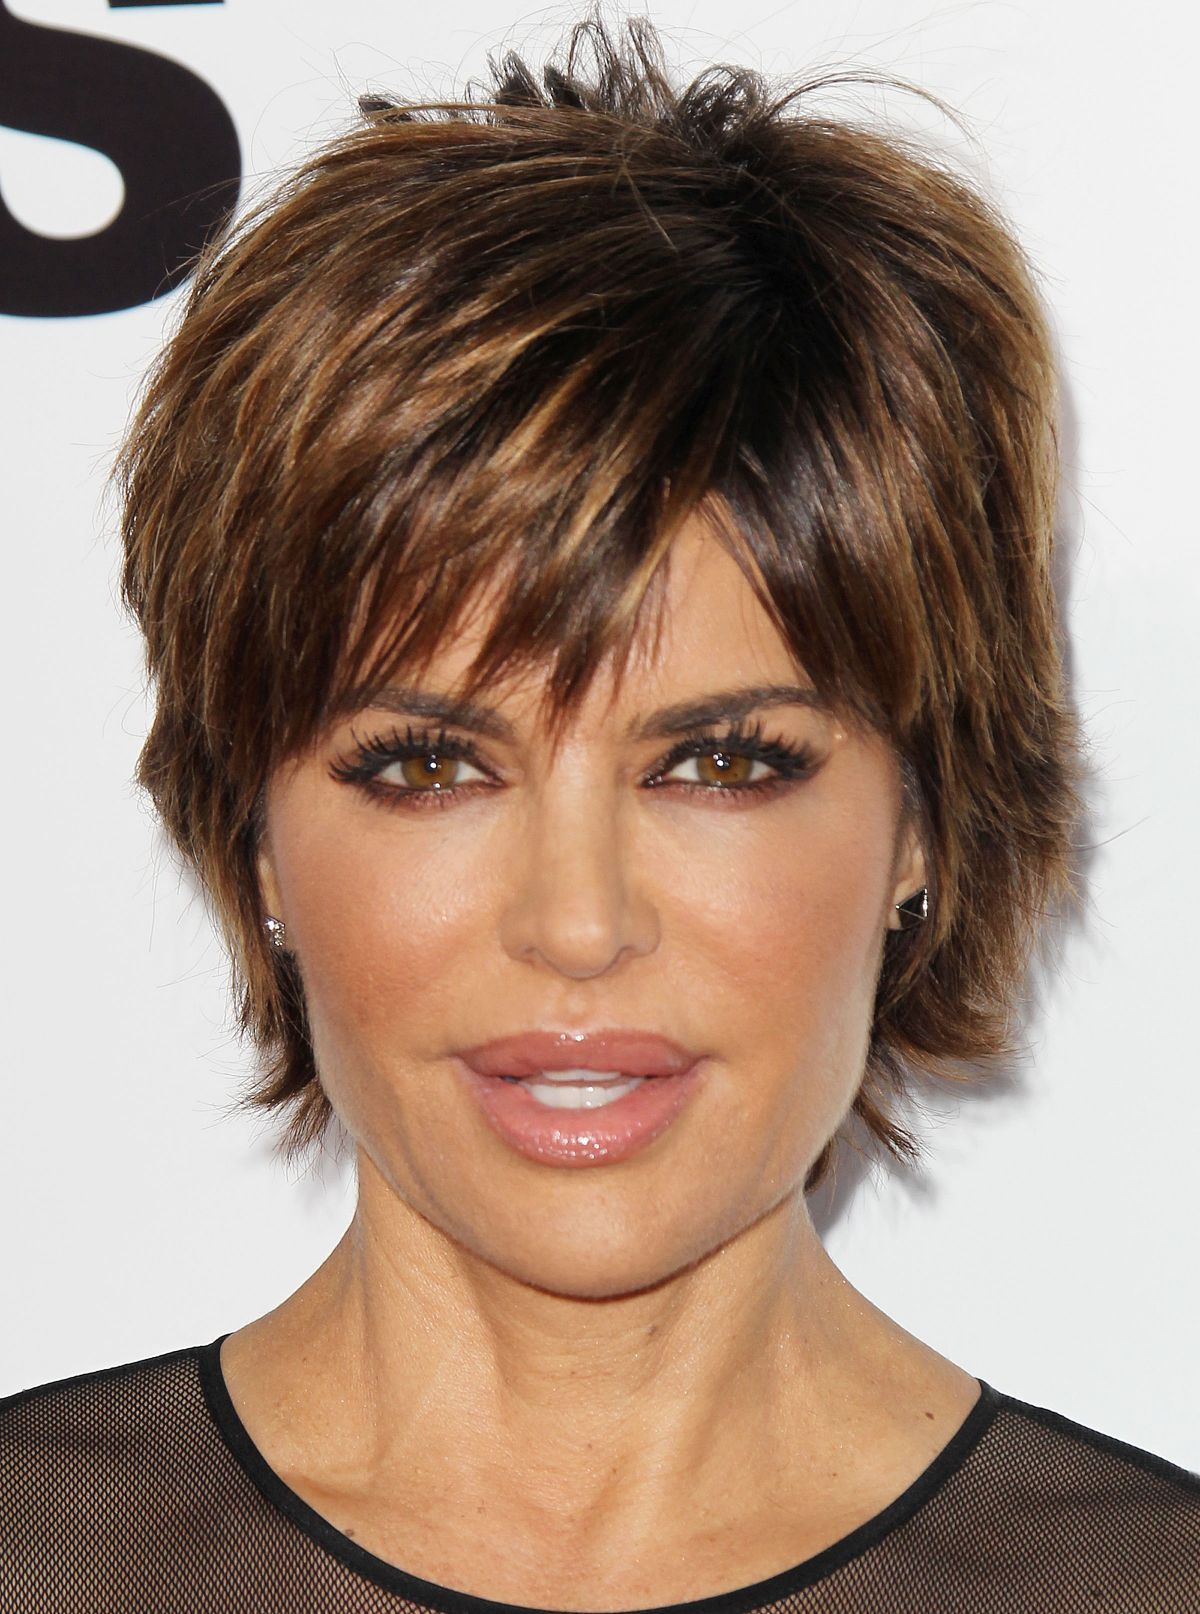 17 Celebrity Inspired Short Hairstyles and Haircuts for ...